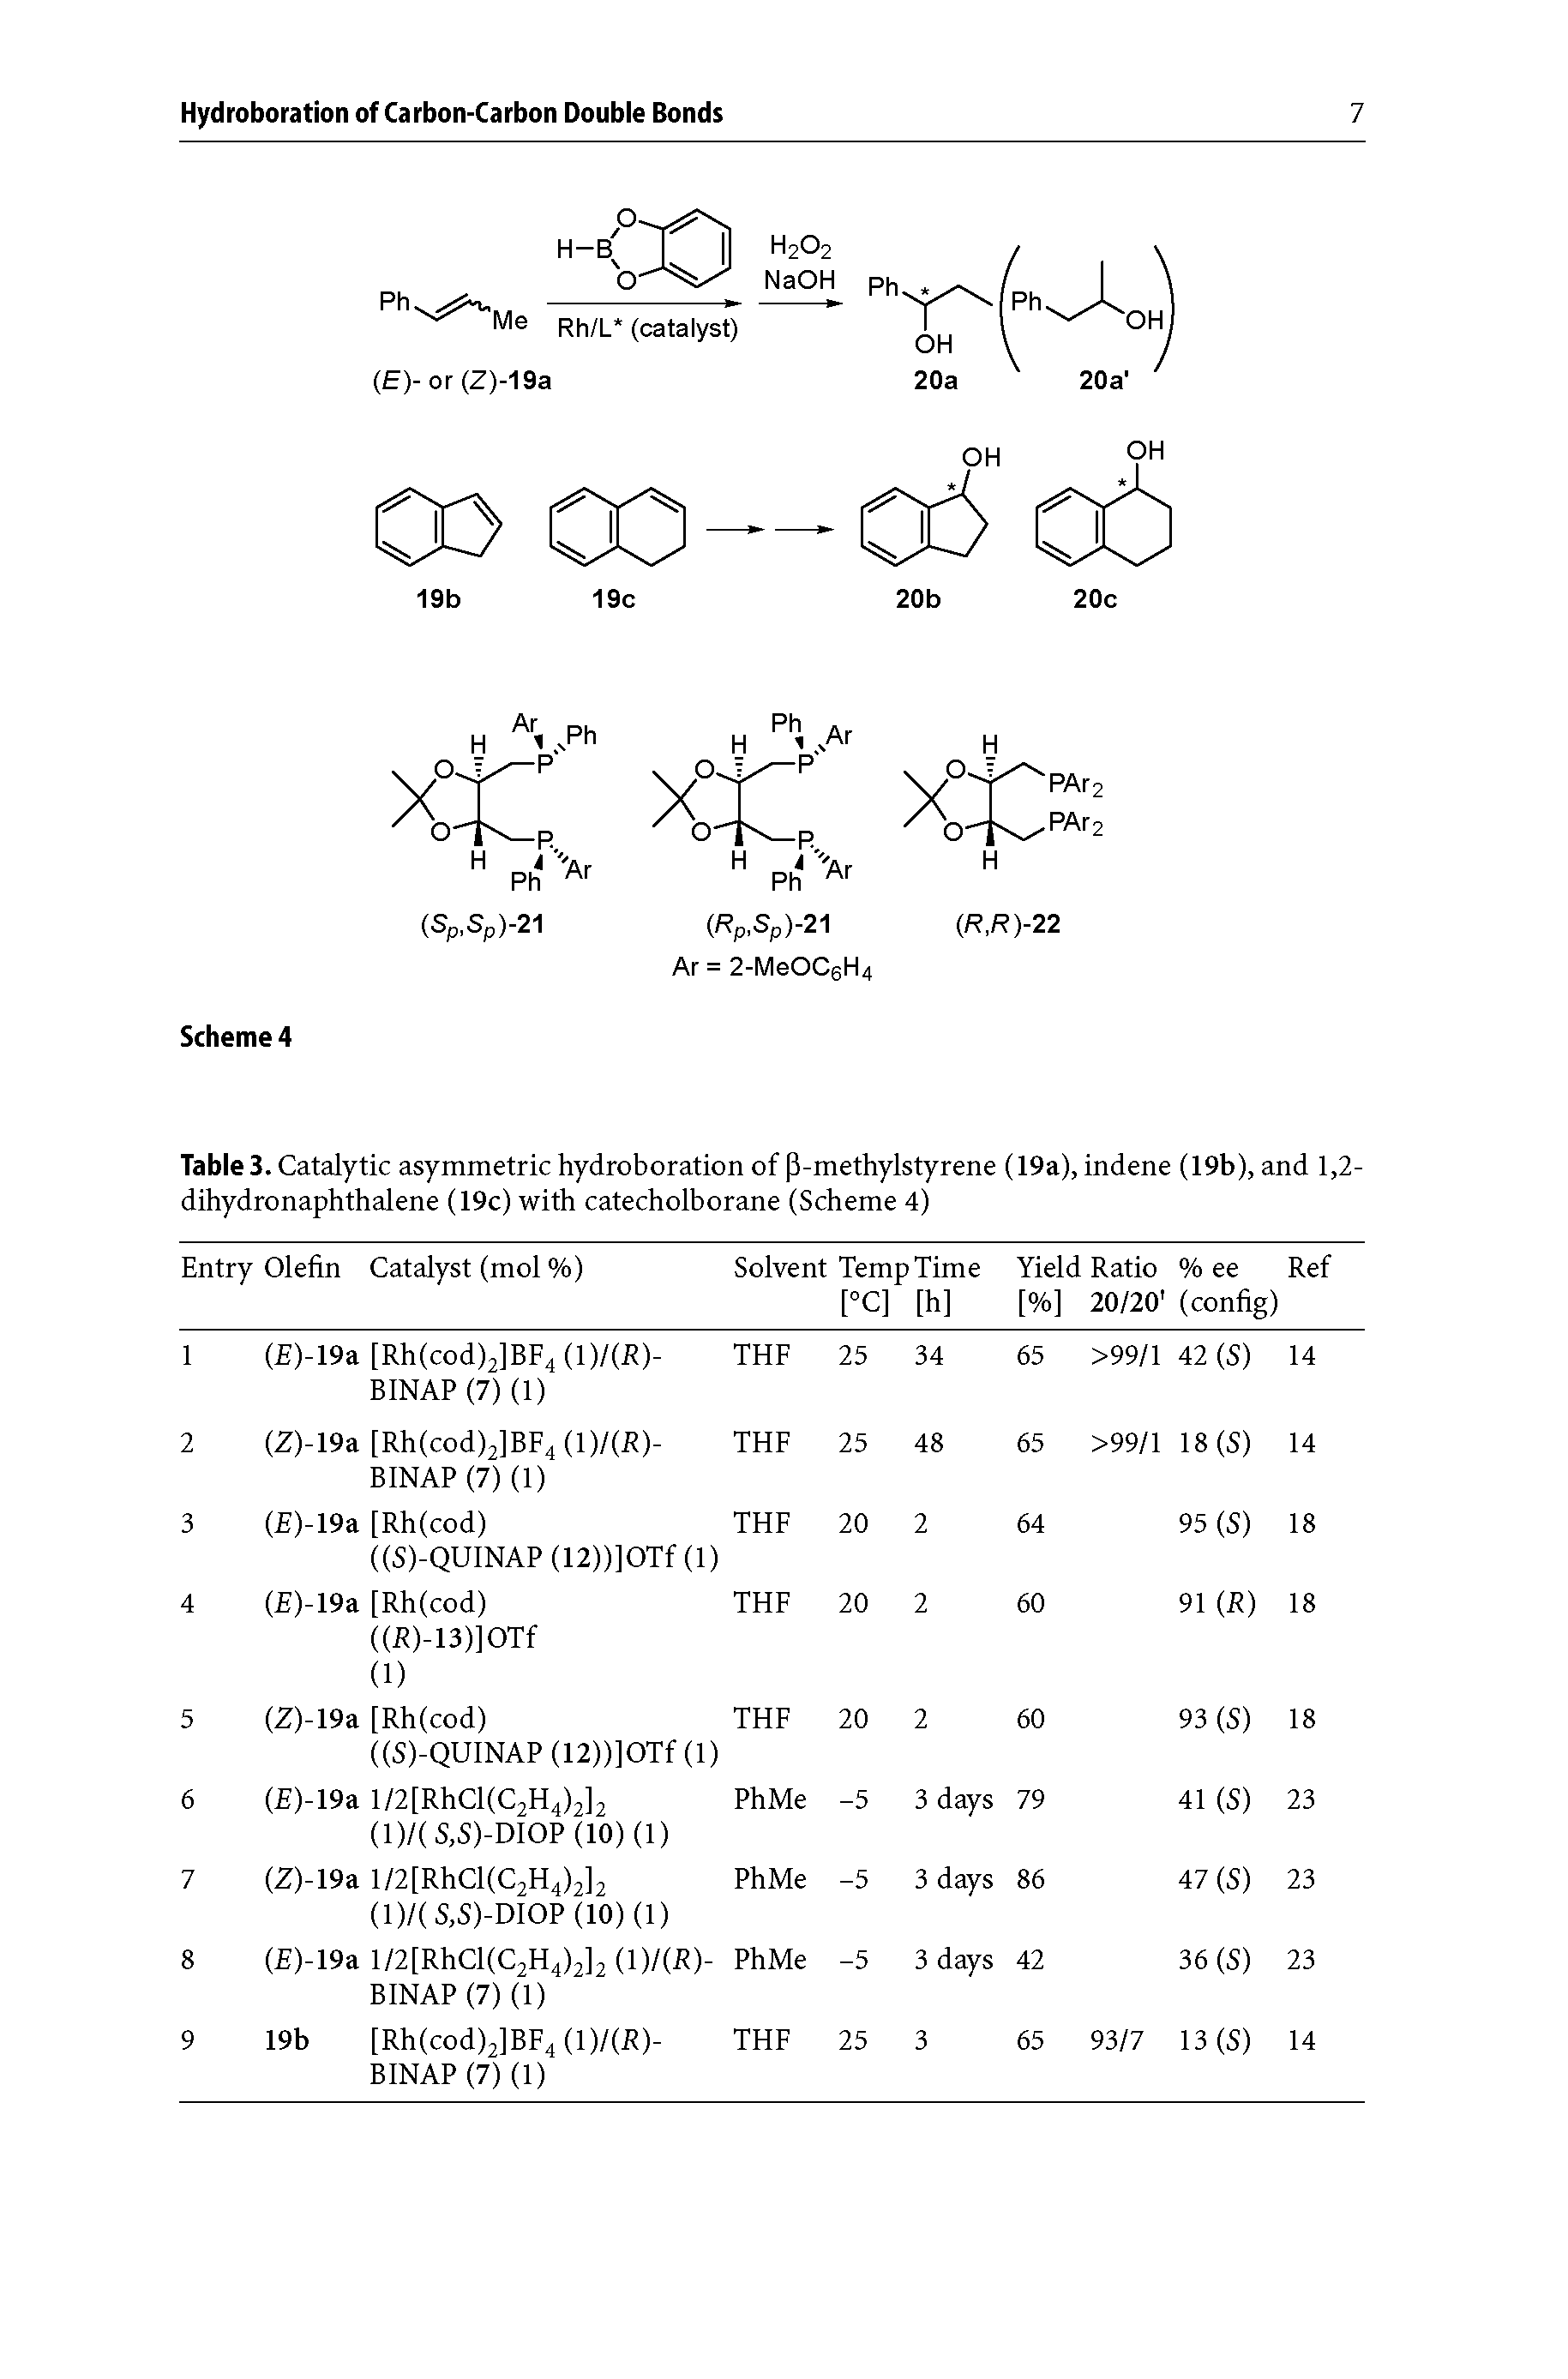 Tables. Catalytic asymmetric hydroboration of 3-methylstyrene (19a), indene (19b), and 1,2-dihydronaphthalene (19c) with catecholborane (Scheme 4)